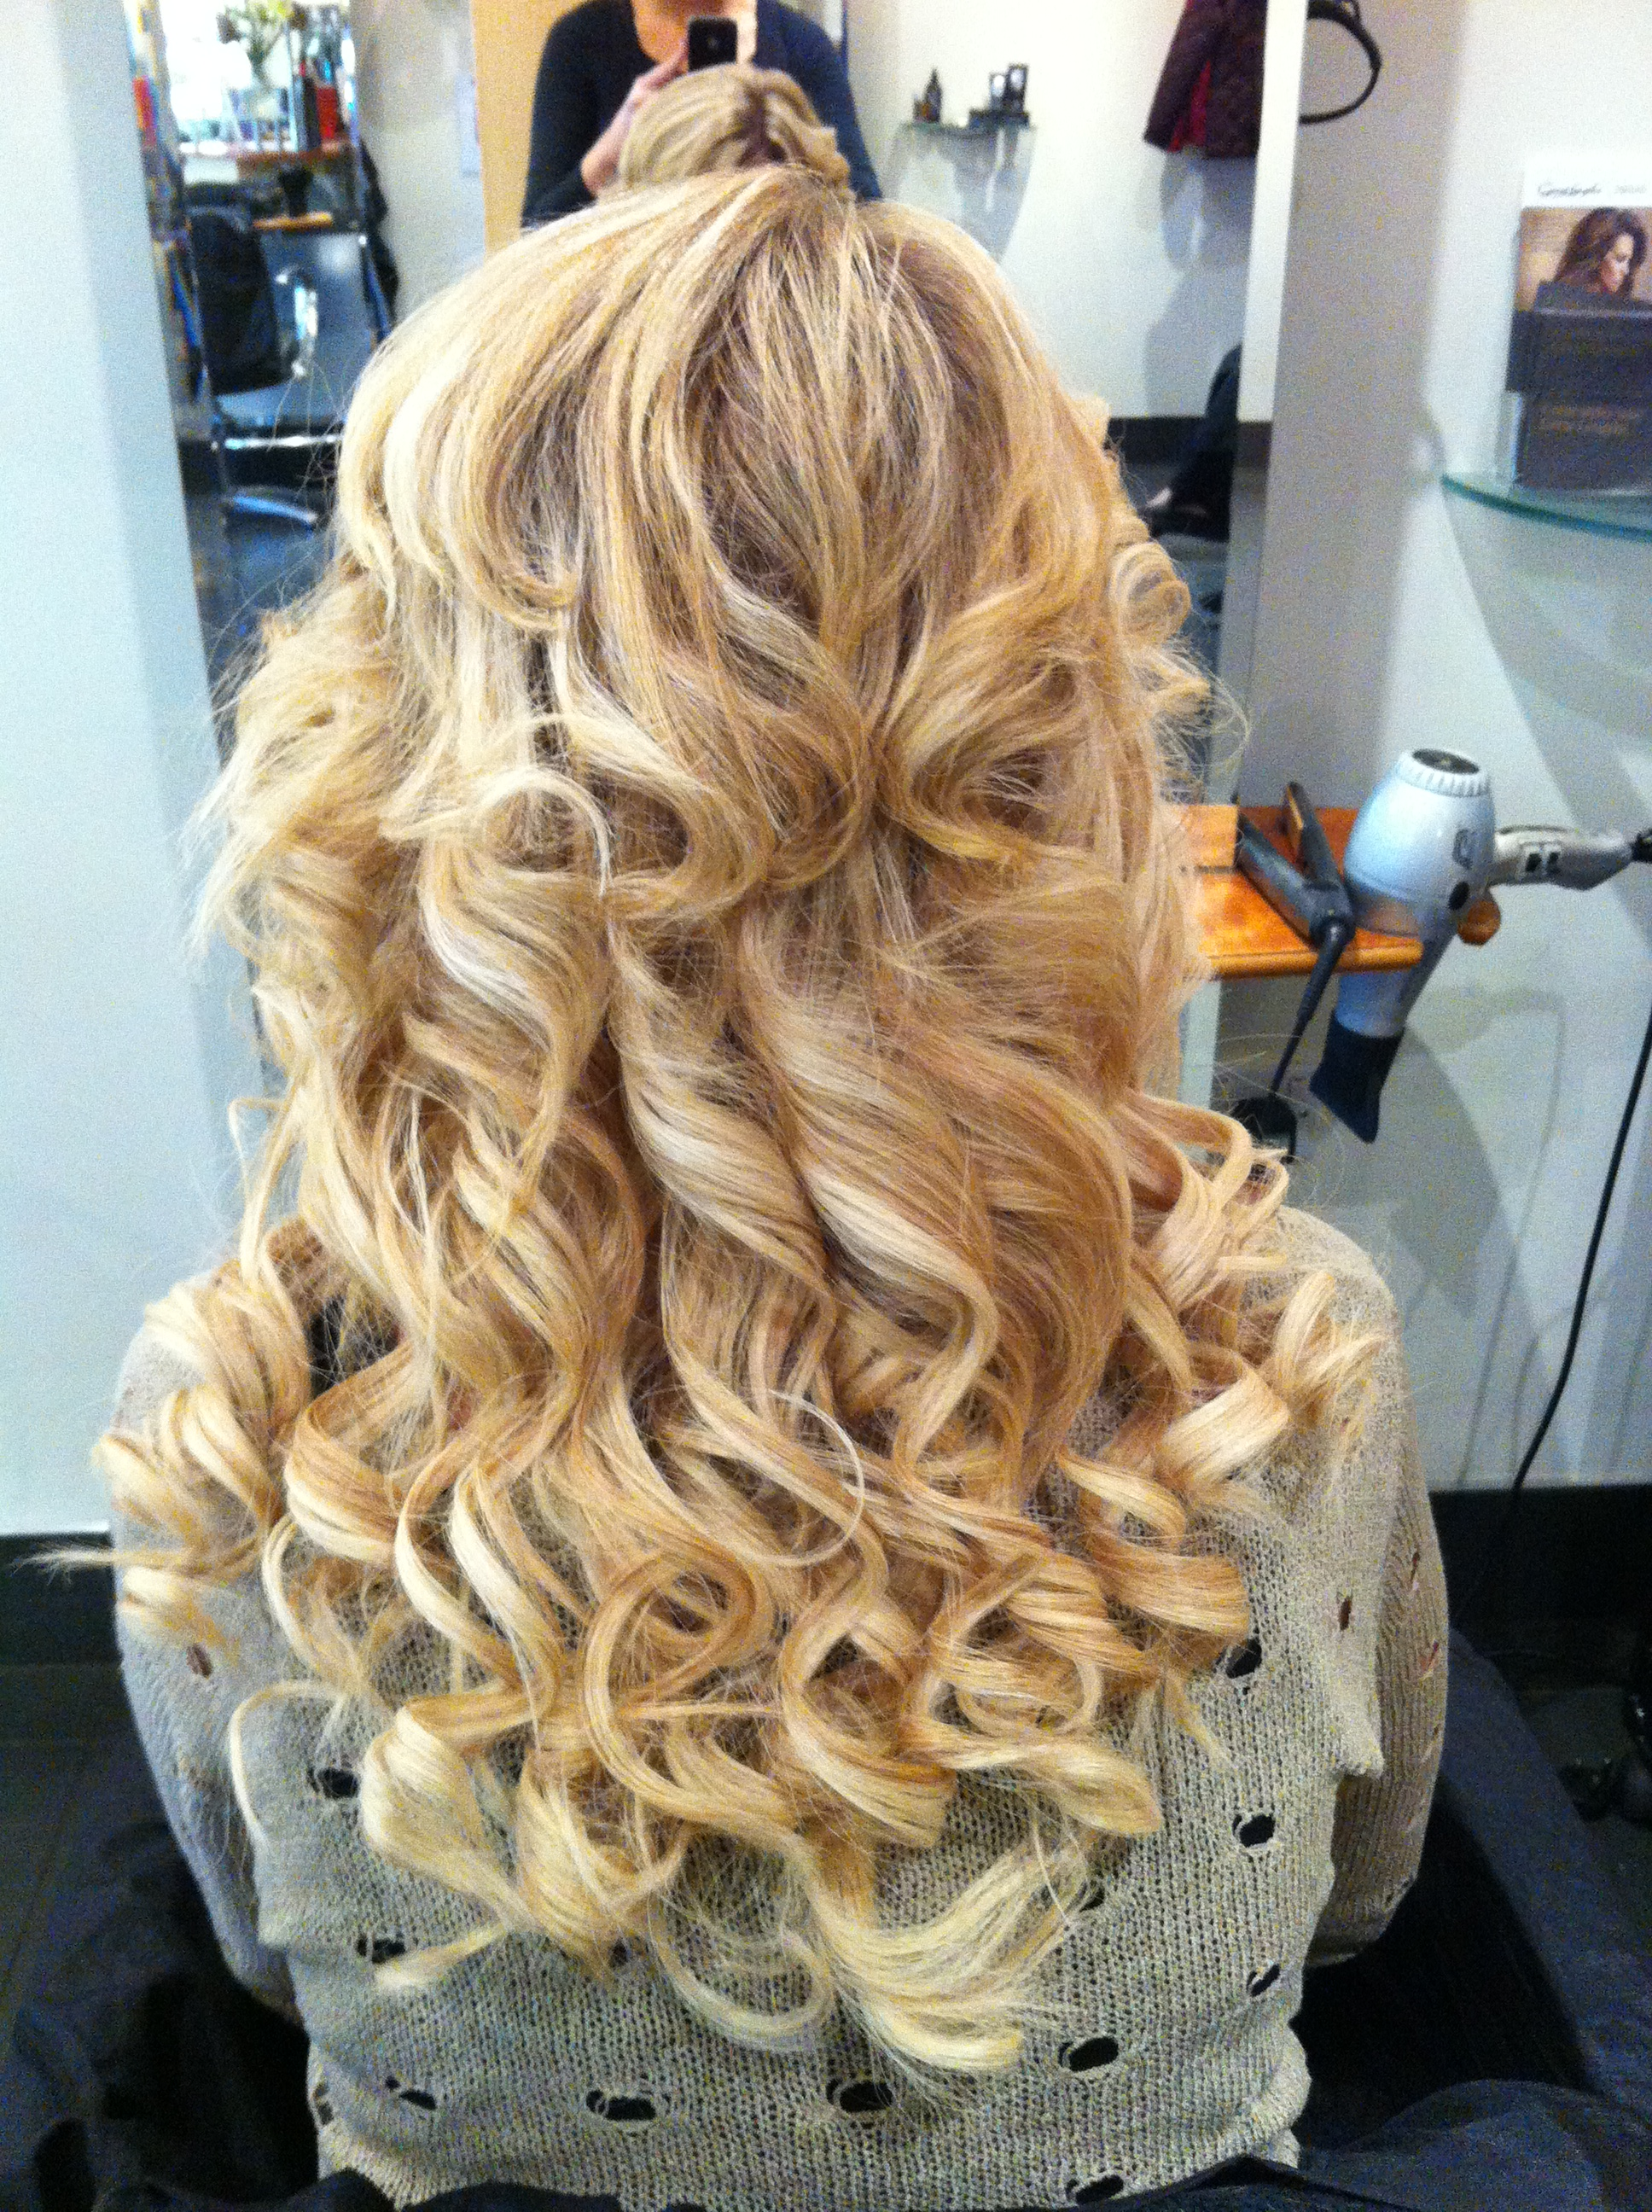 Great Lengths Hair Extensions Prices Triple Weft Hair Extensions